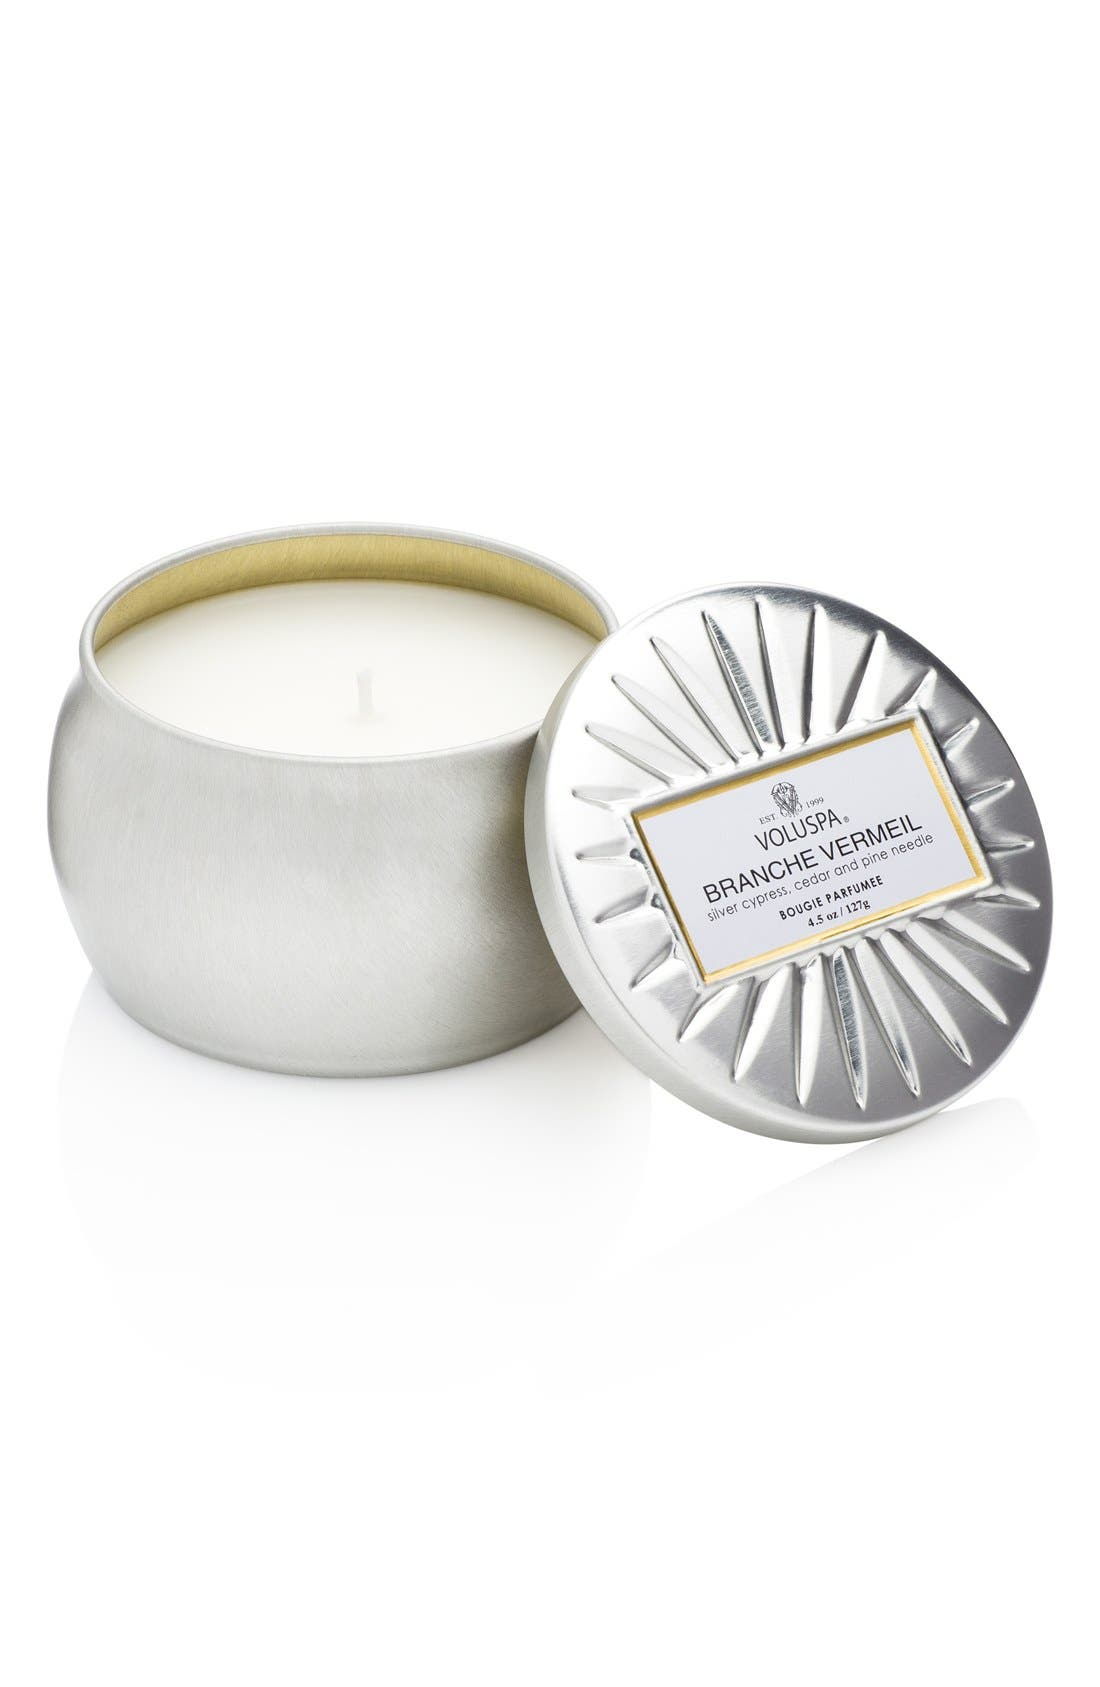 Voluspa 'Vermeil - Branche Vermeil' Mini Tin Candle